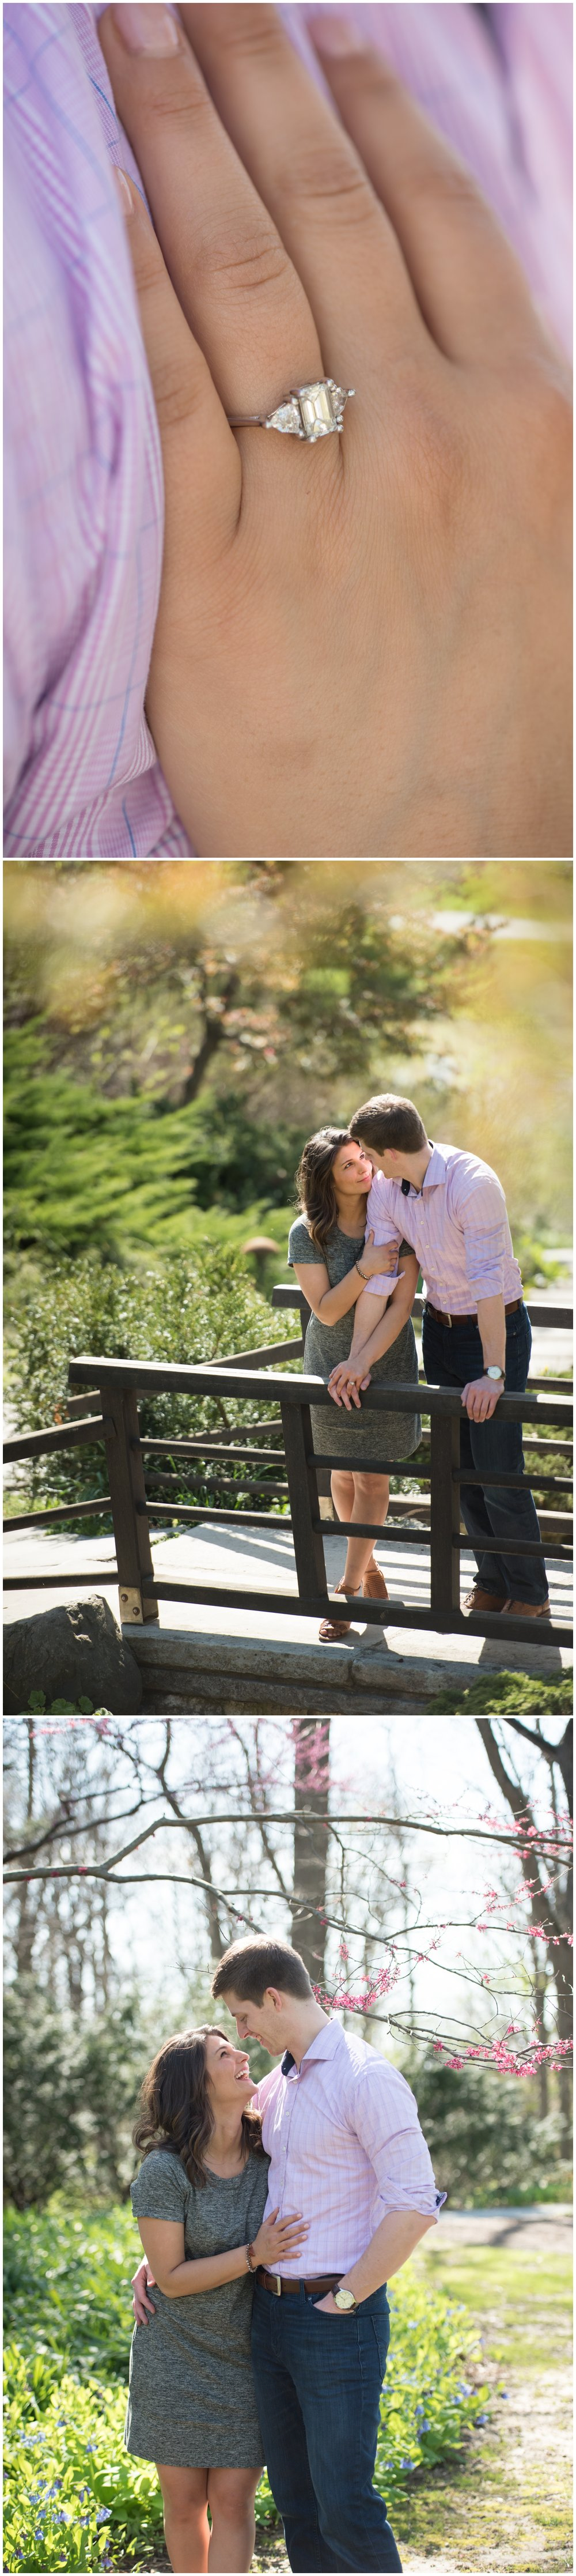 Indianapolis Engagement Session at the IMA by Rachael Foster Photography_0014.jpg